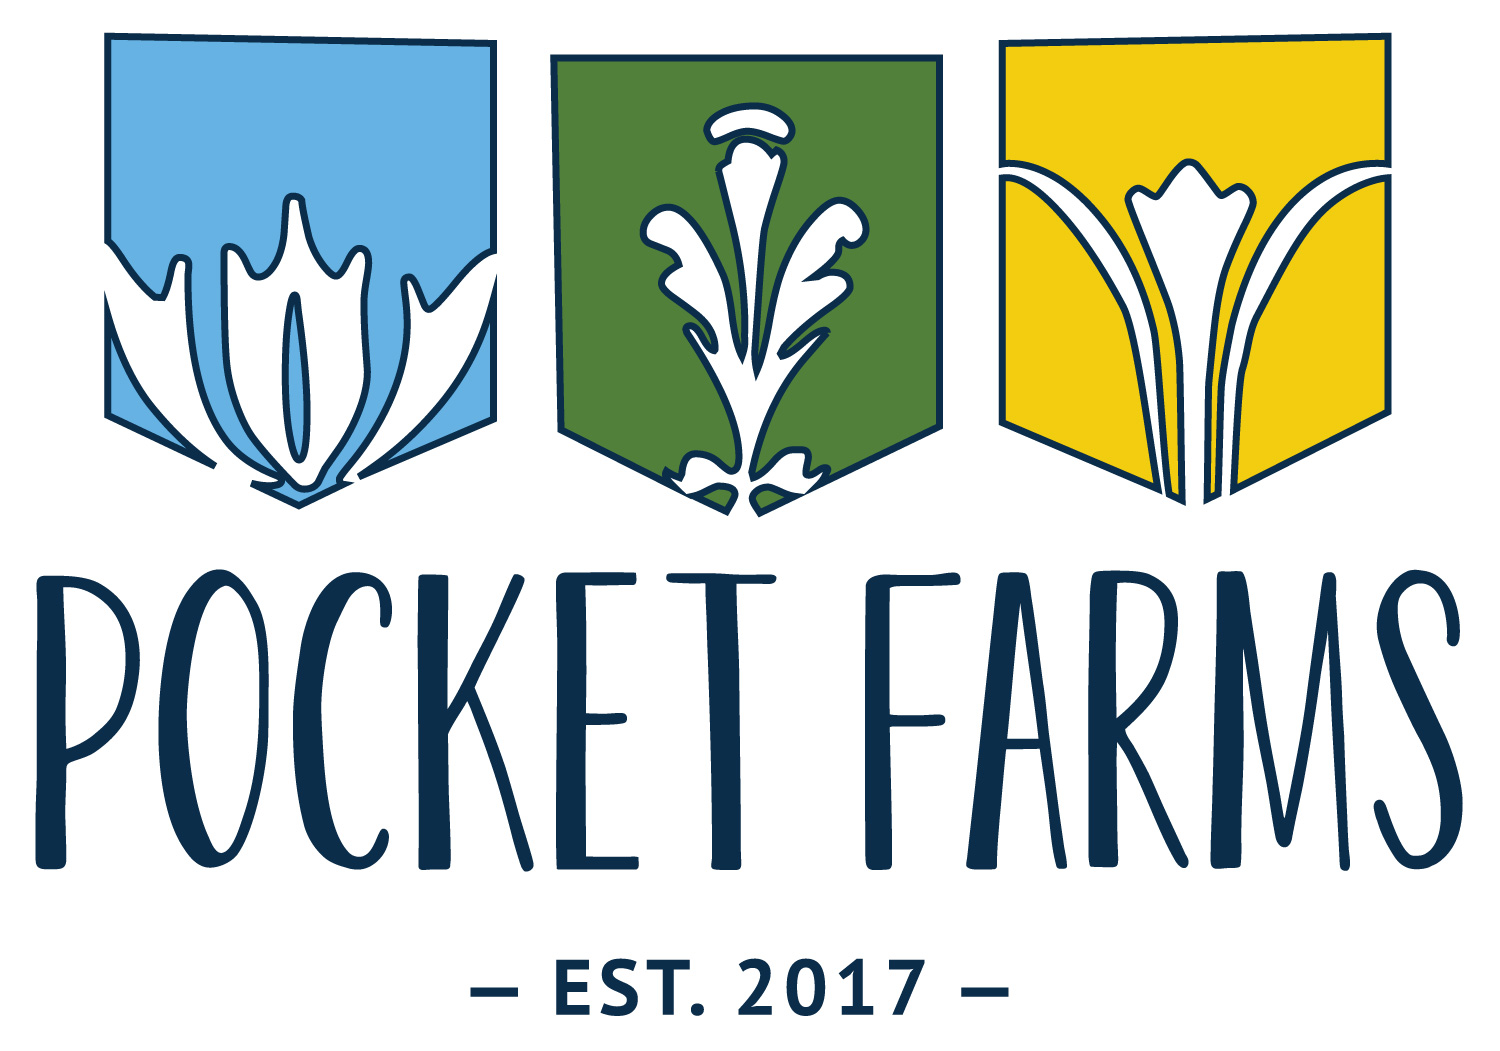 Pocket Farms_Full color logo w est_HR.jpg